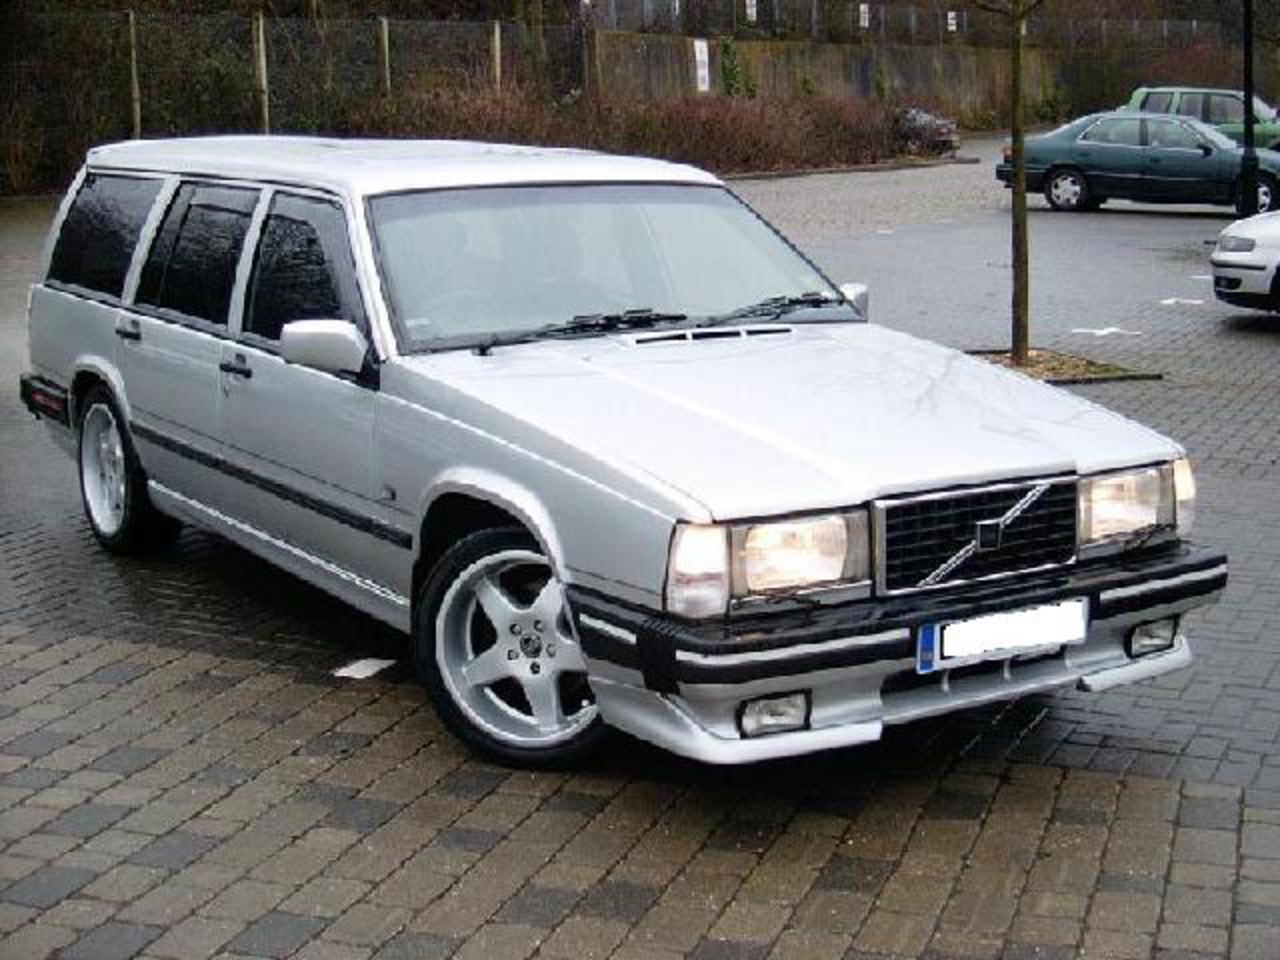 Topworldauto Photos Of Volvo 740 Photo Galleries 1990 240 Wiring Manual Turbo Estate View Download Wallpaper 640x480 Comments